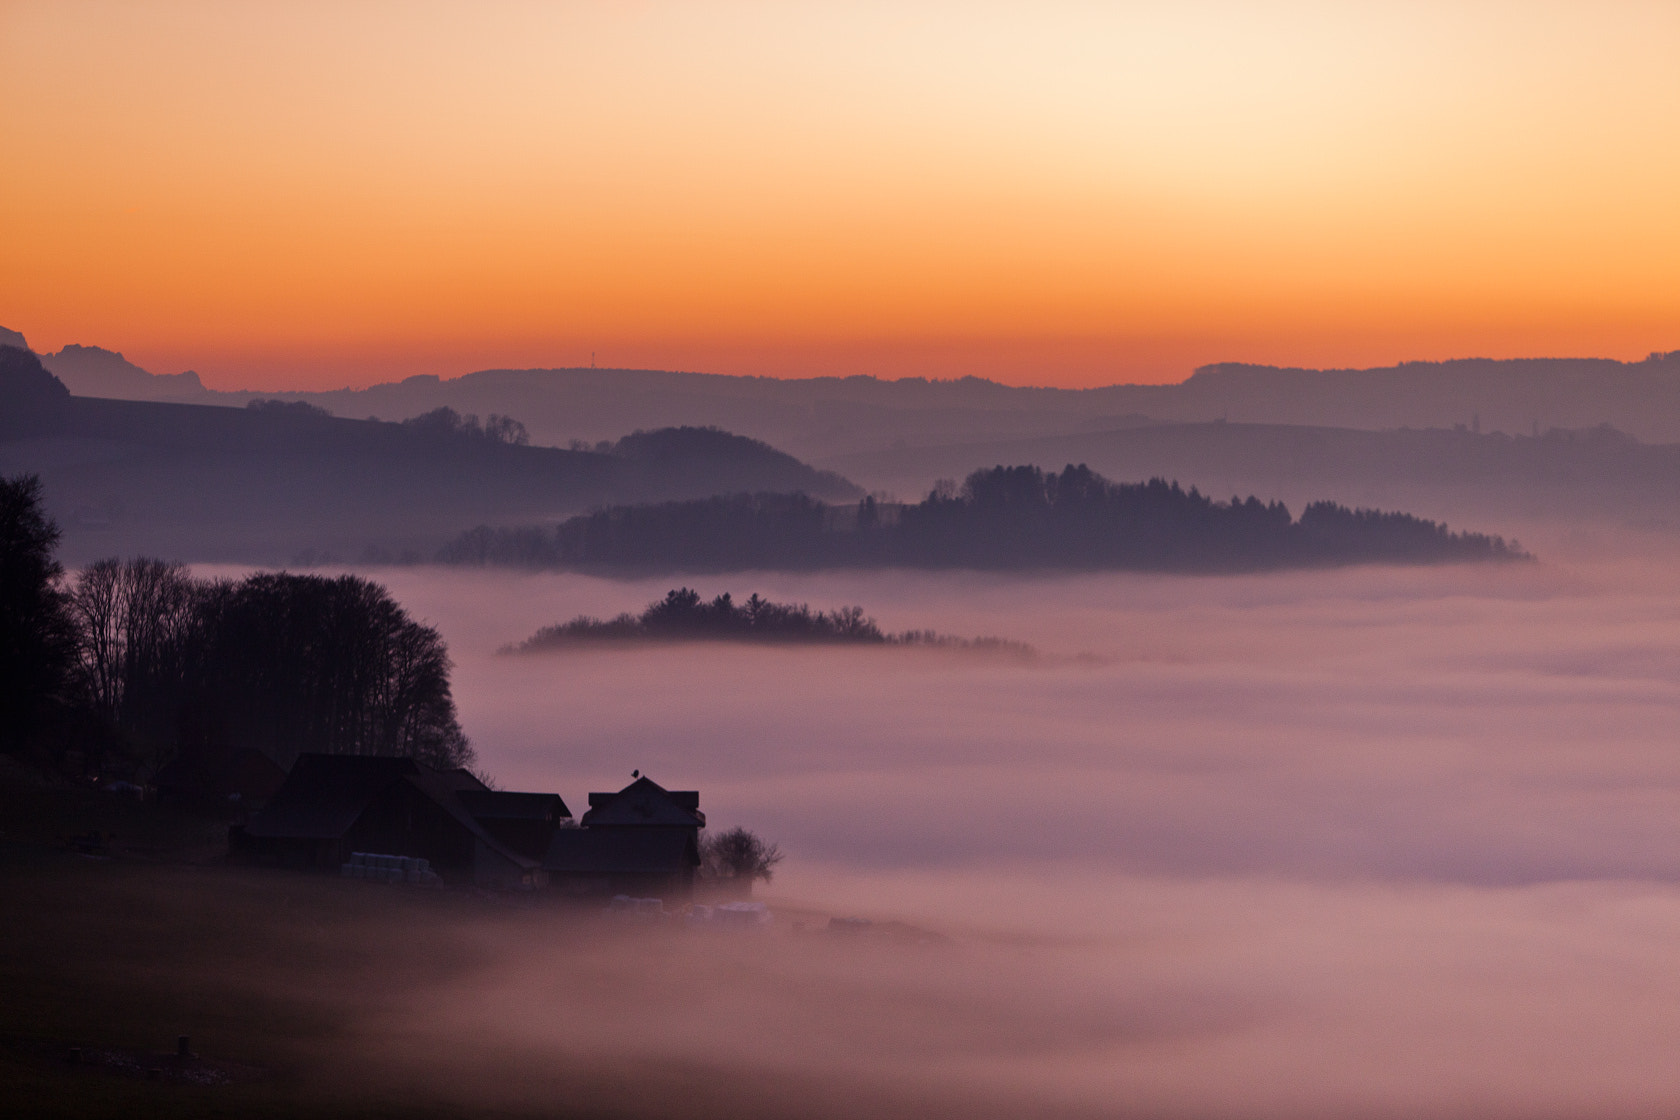 Photograph Foggy sunset by Myriam Spitz Mooser on 500px